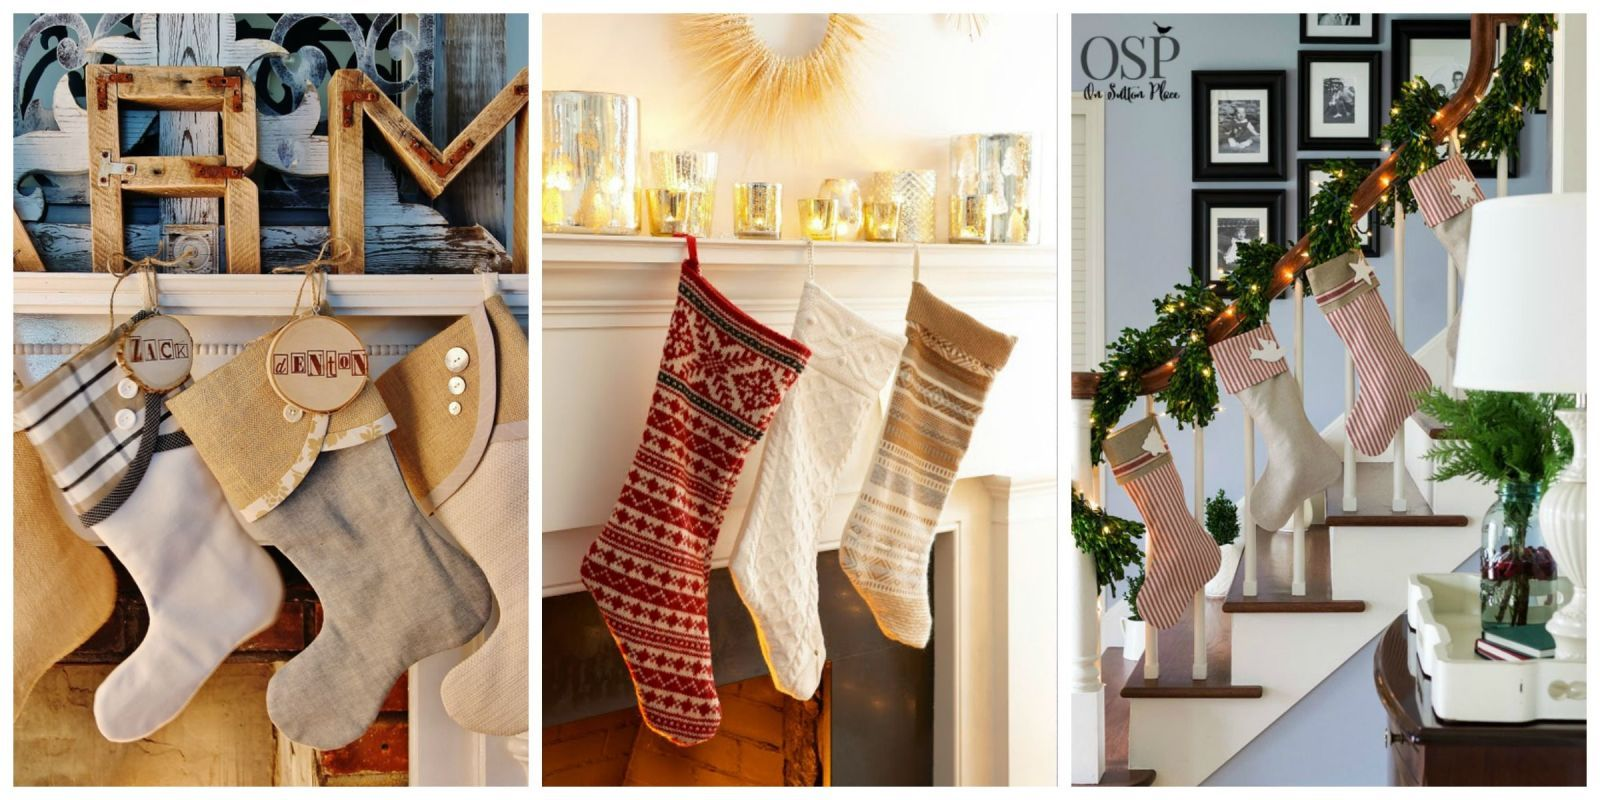 22 Festive and Crafty Christmas Stockings Worth Stuffing  - CountryLiving.com